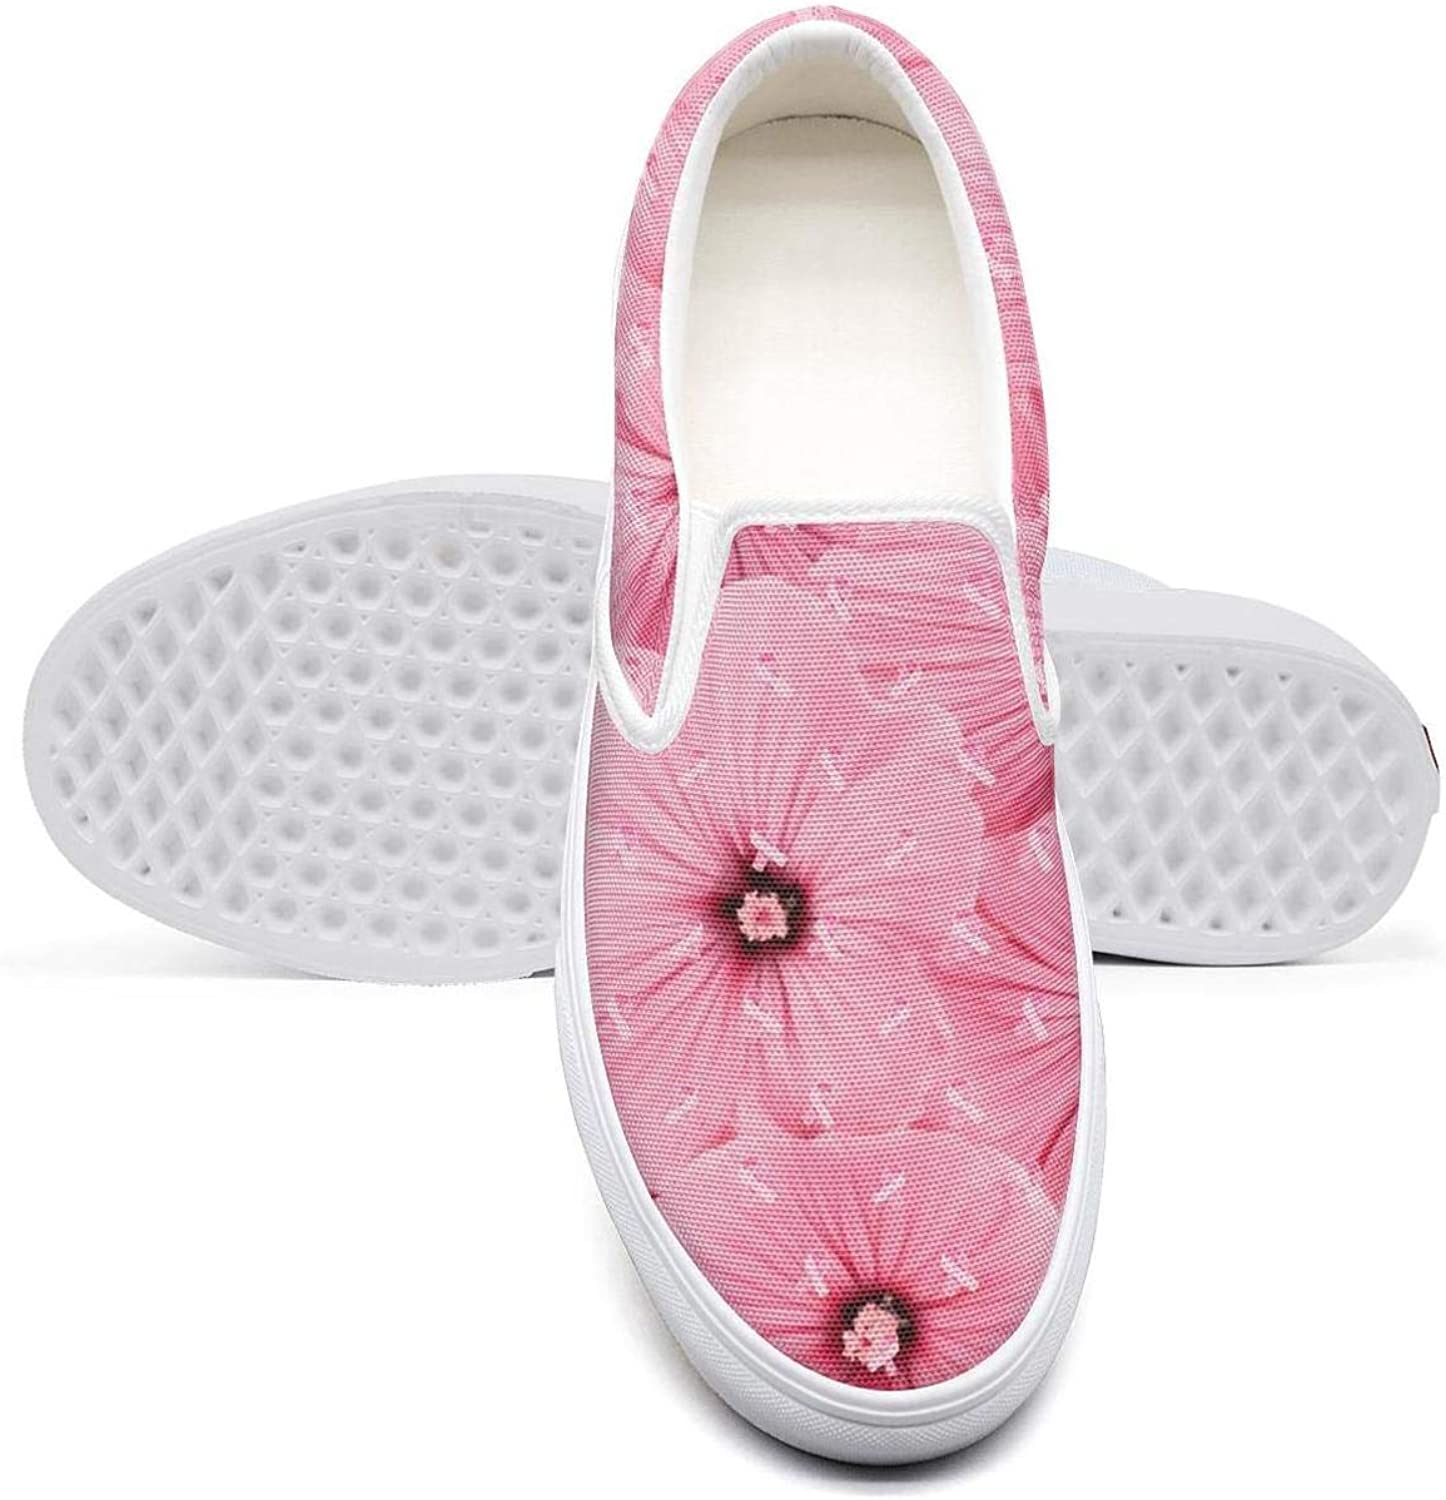 PDAQS Women Breast Cancer Awareness Pink Casual Loafers Canvas shoes Low top